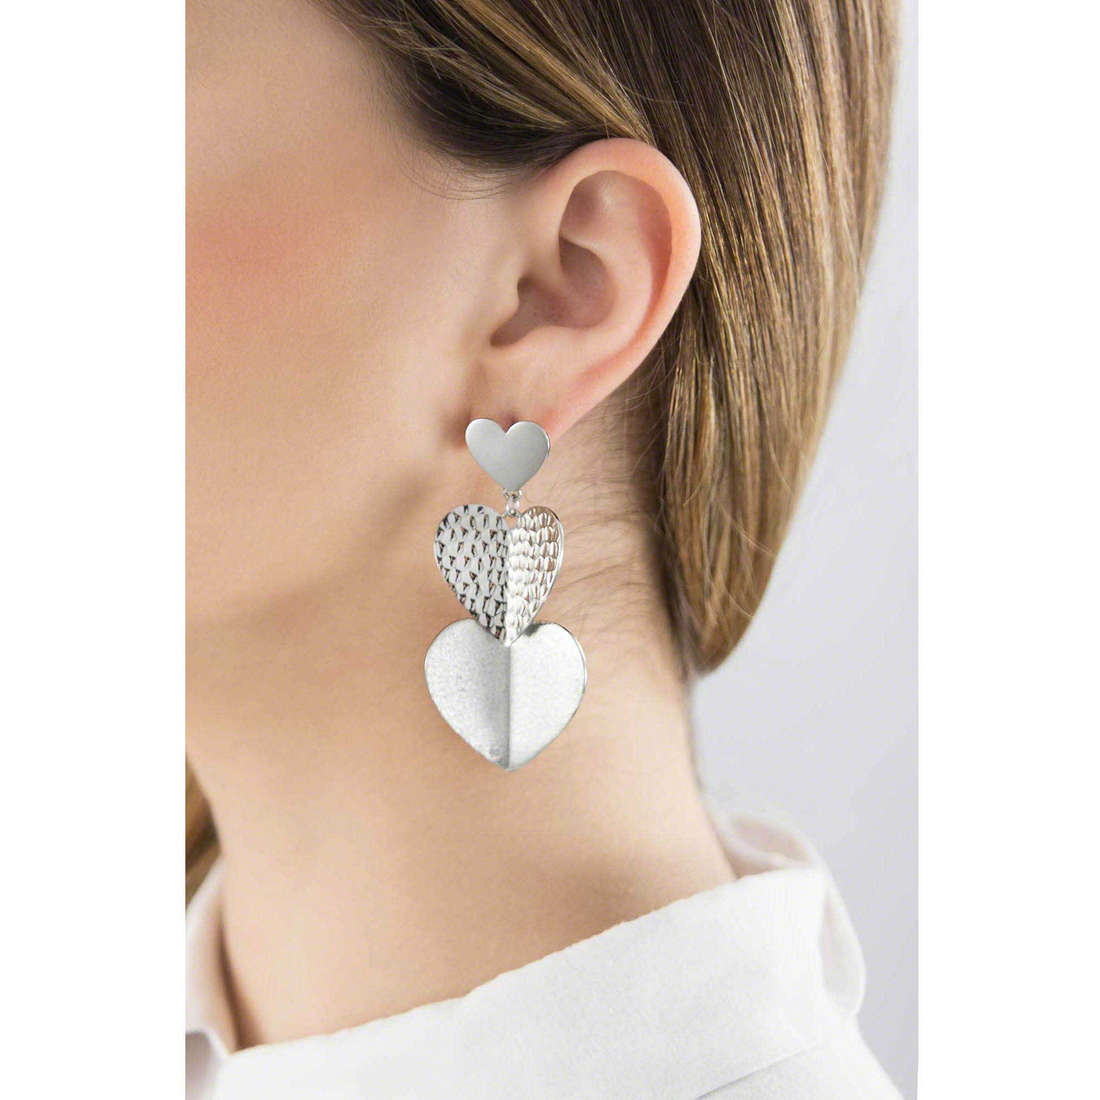 Brosway boucles d'oreille Heart Beat femme BHB22 indosso